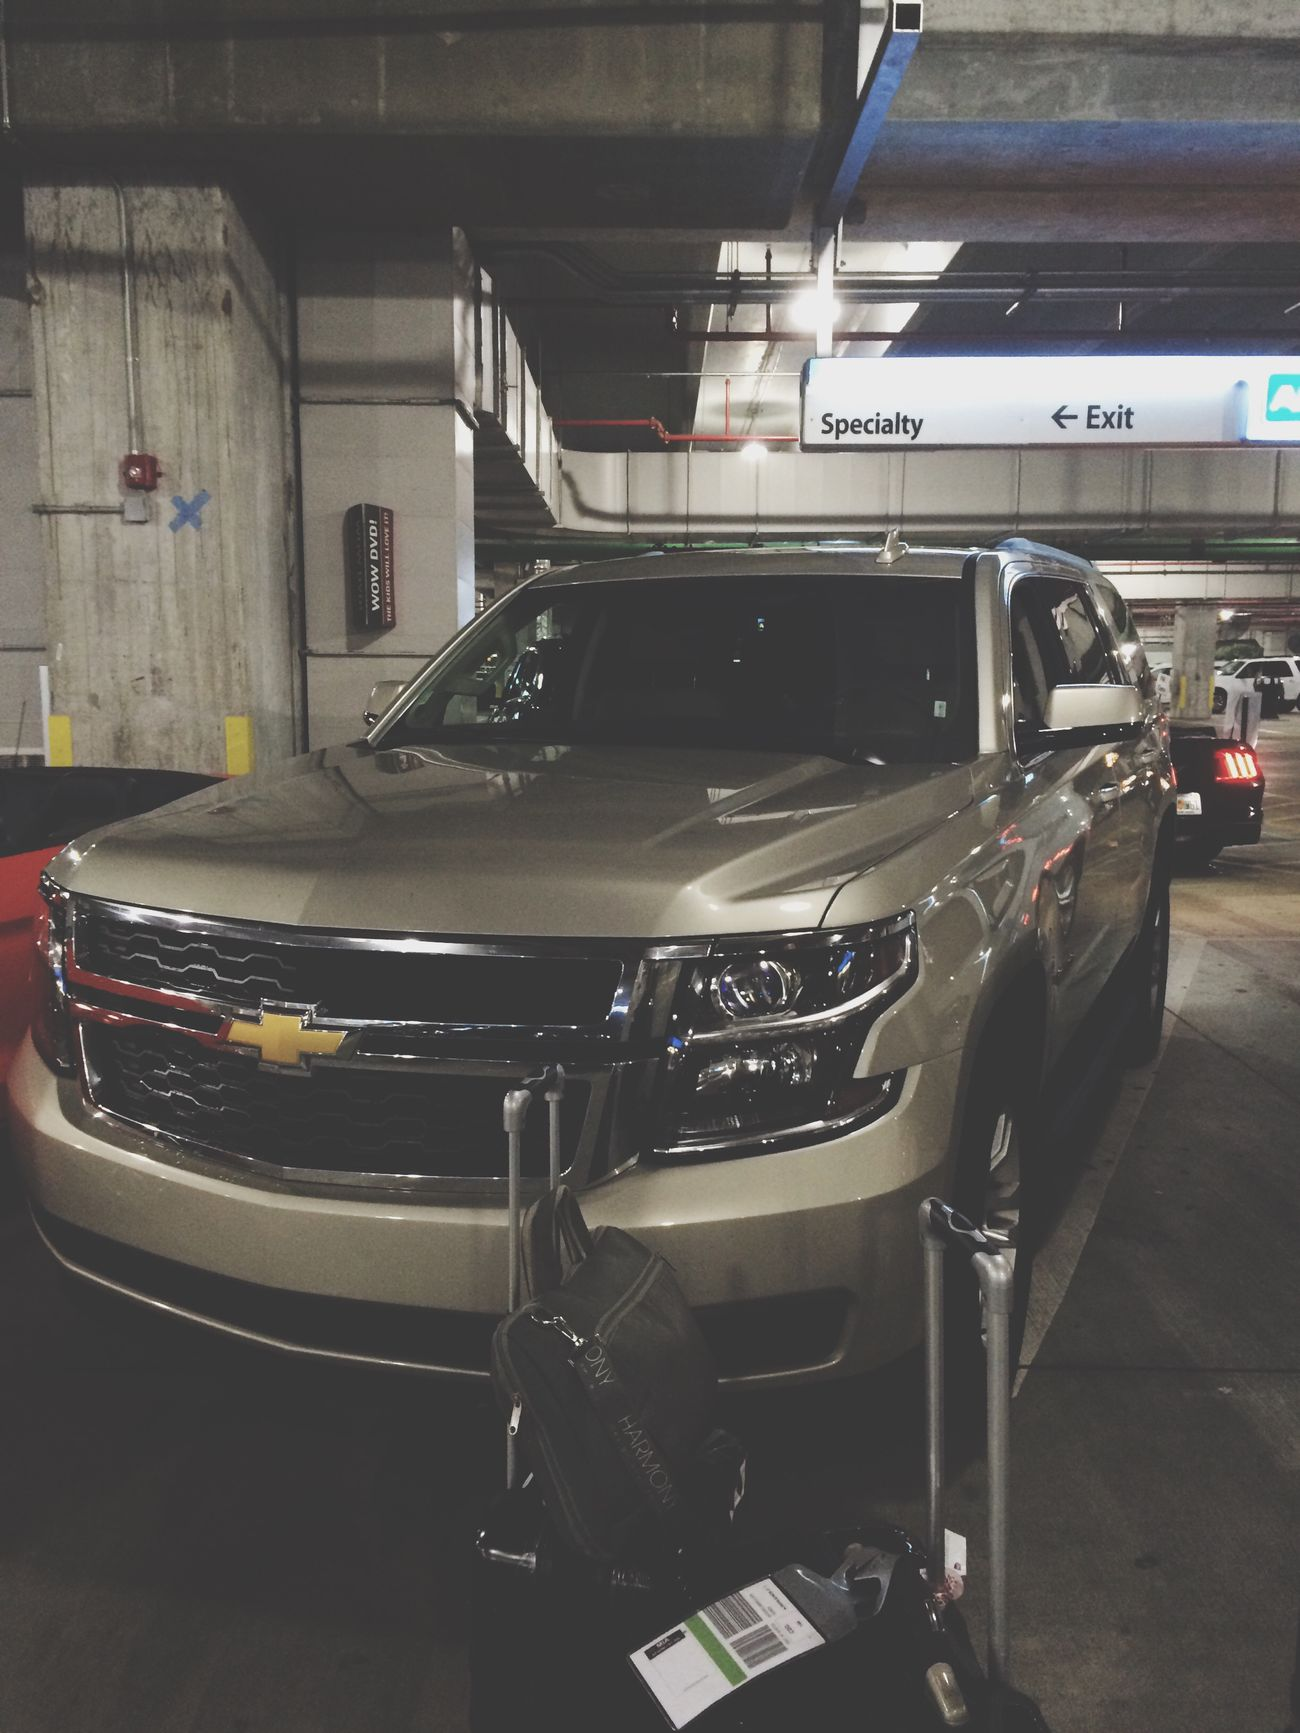 Lovely car of summer Chevrolet Voiture Check This Out Juillet Miami Hanging Out Hello World USAtrip Summer Enjoying Life